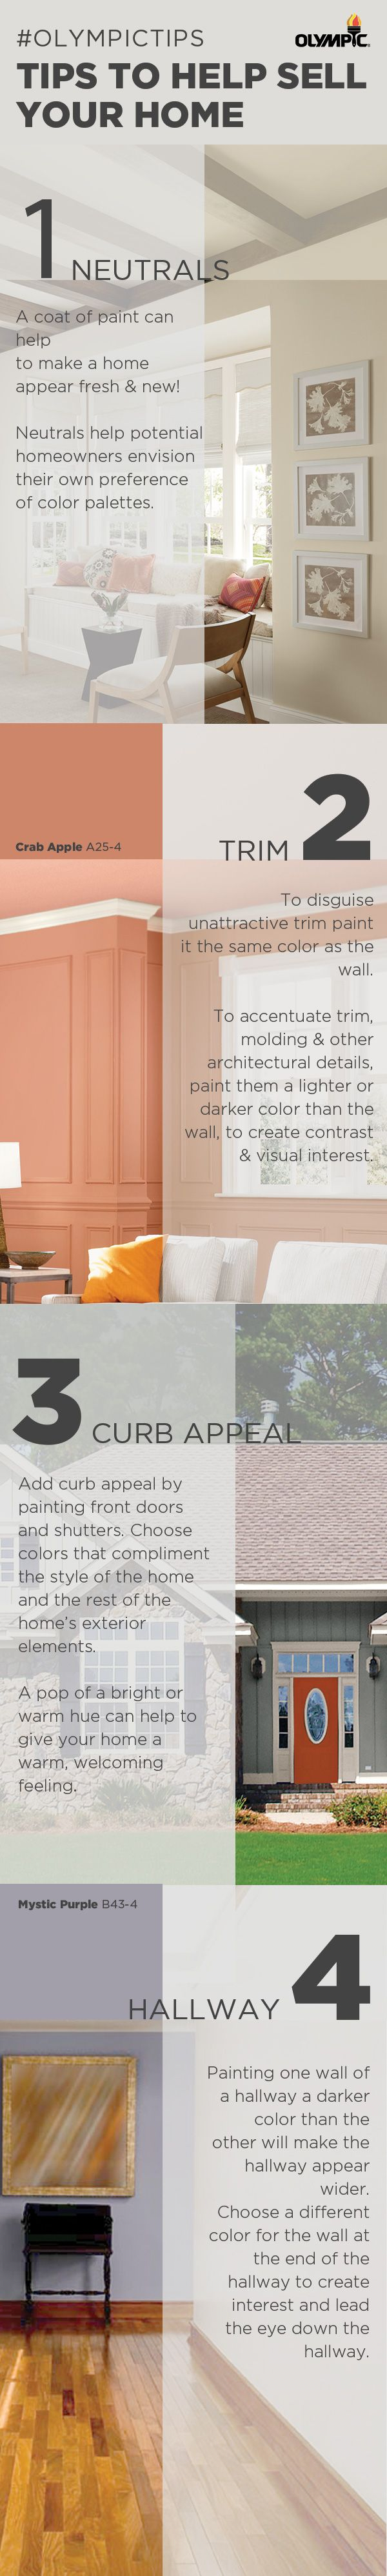 16 best images about tips to help sell your home on for Best color to paint house to sell